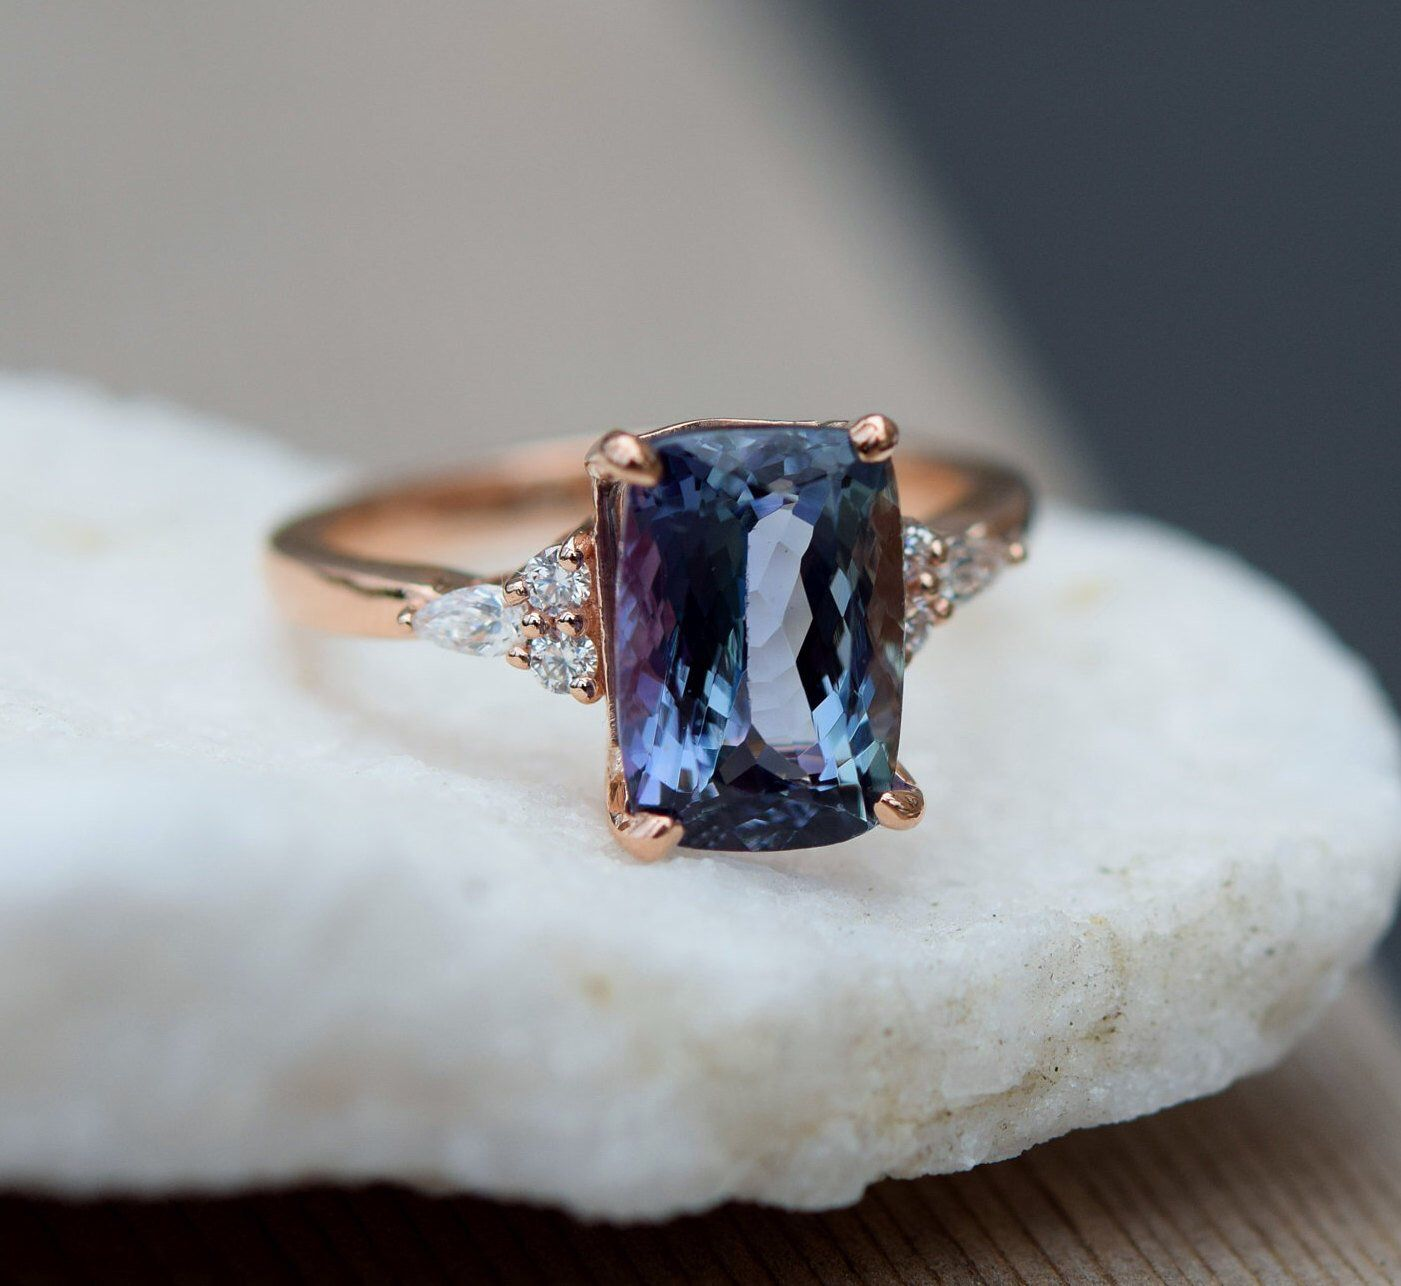 Teal tanzanite engagement ring. Peacock blue tanzanite 5.3ct cushion diamond ring 14k rose gold. Campari Engagement ring by Eidelprecious